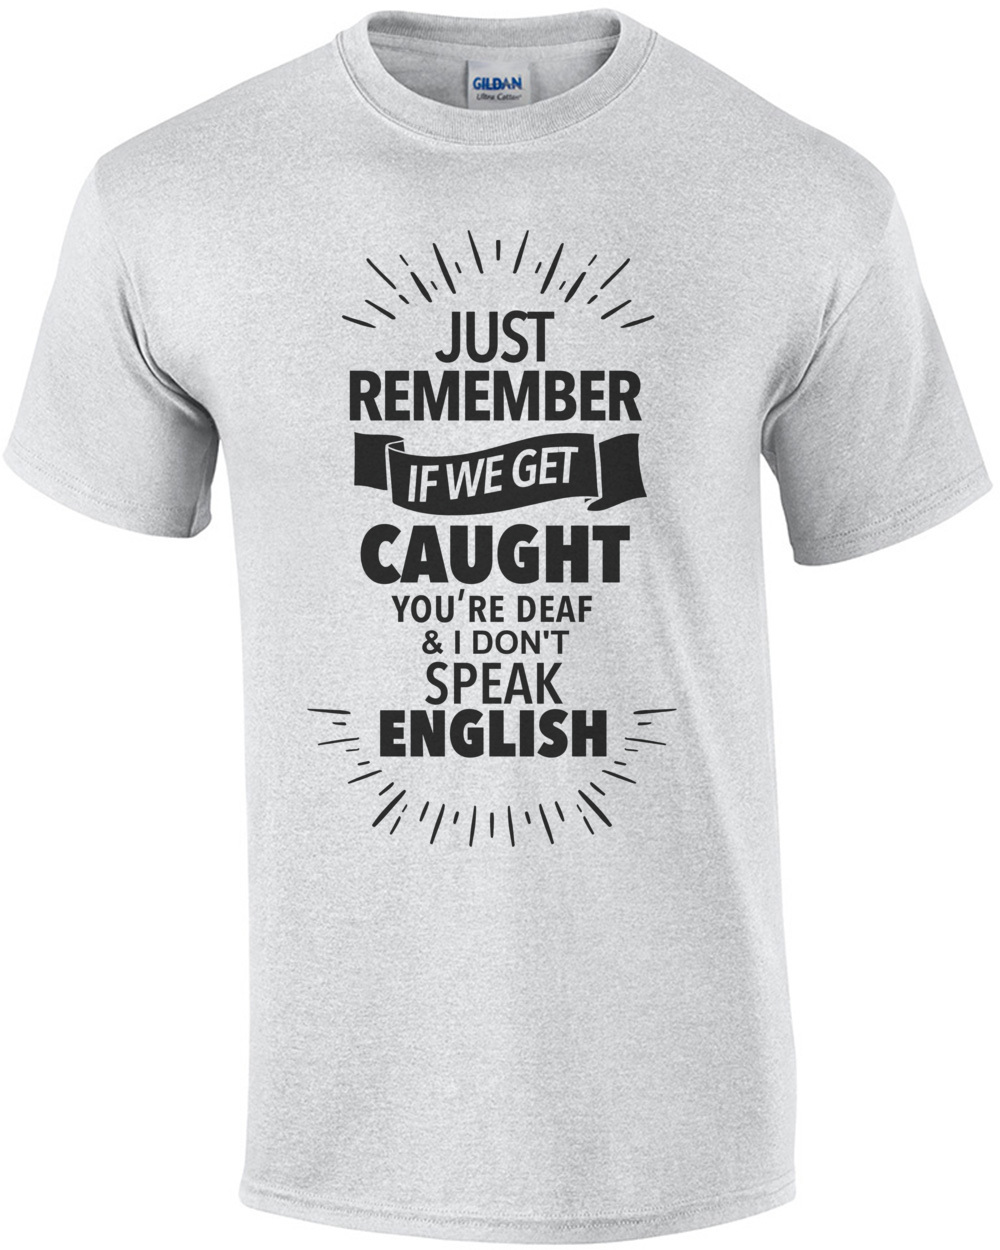 214254c9 just-remember-if-we-get-caught-youre-deaf-and-i-dont-speak-english--funny- tshirt-mens-regular-ash_1.jpg